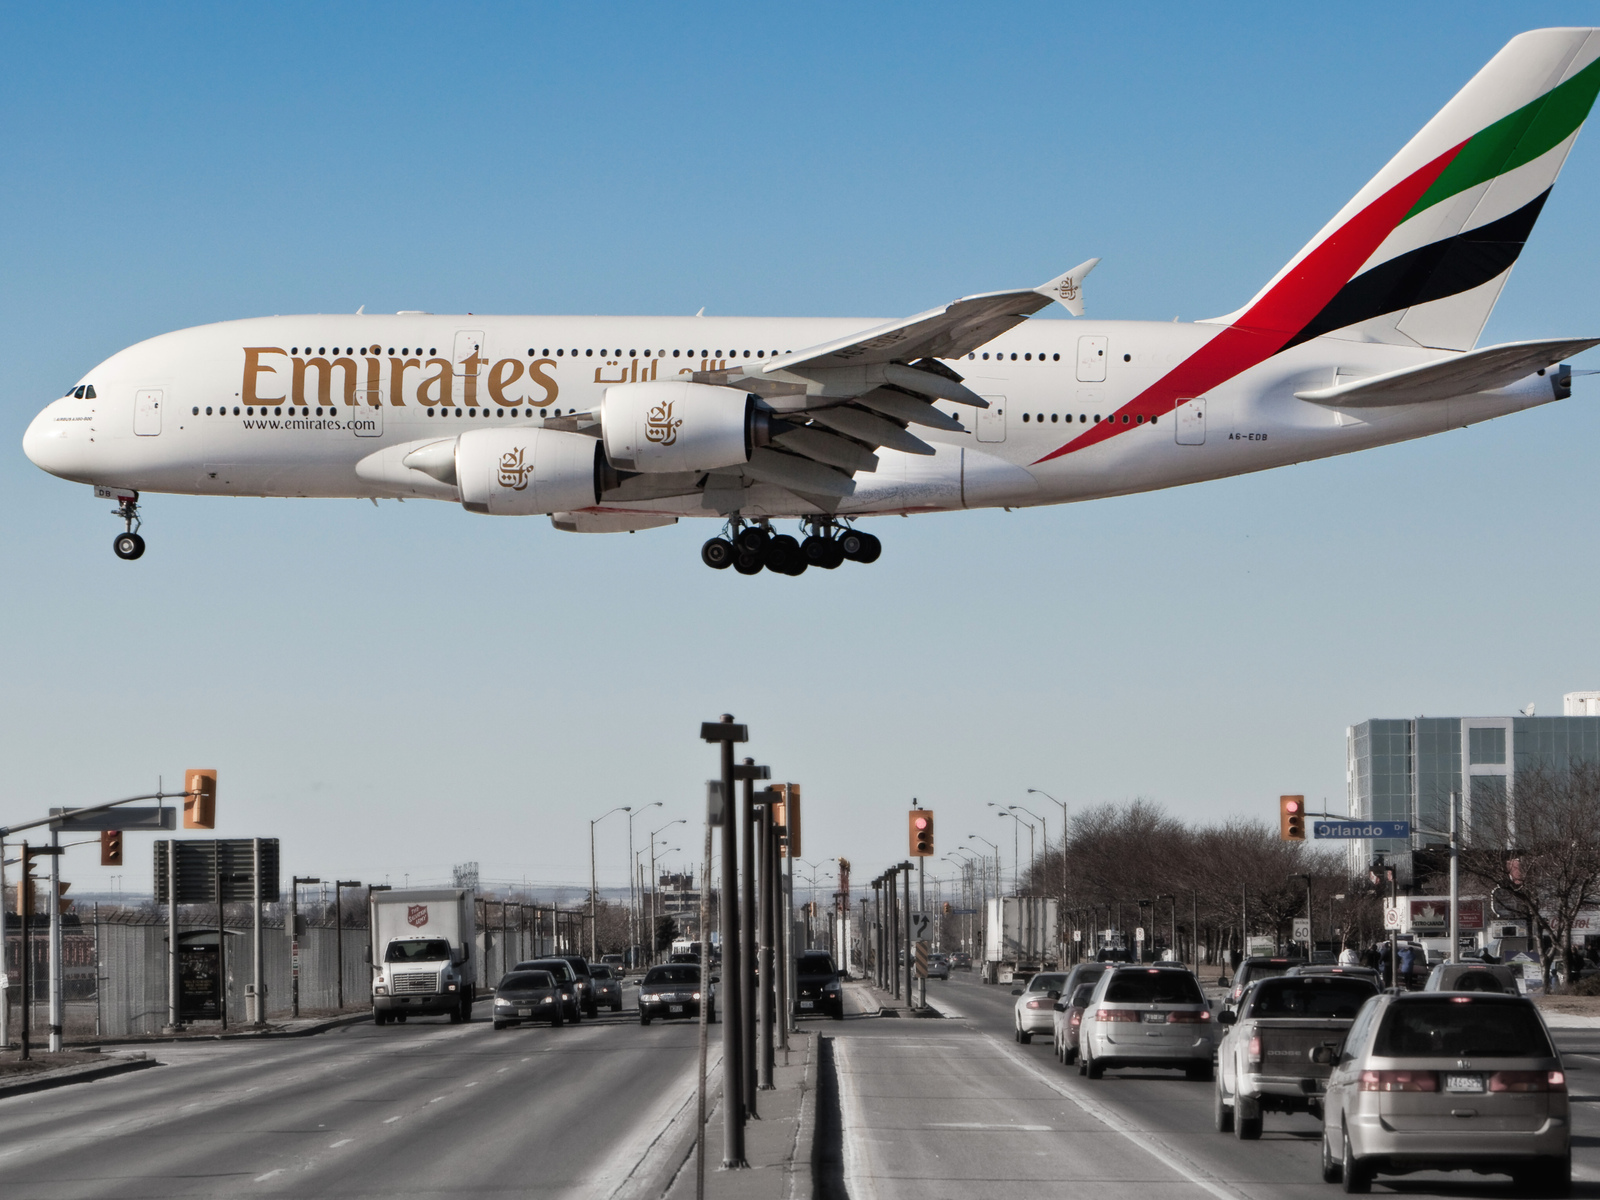 emirates airline, авиалайнер, a380, пассажирский, airbus, самолет